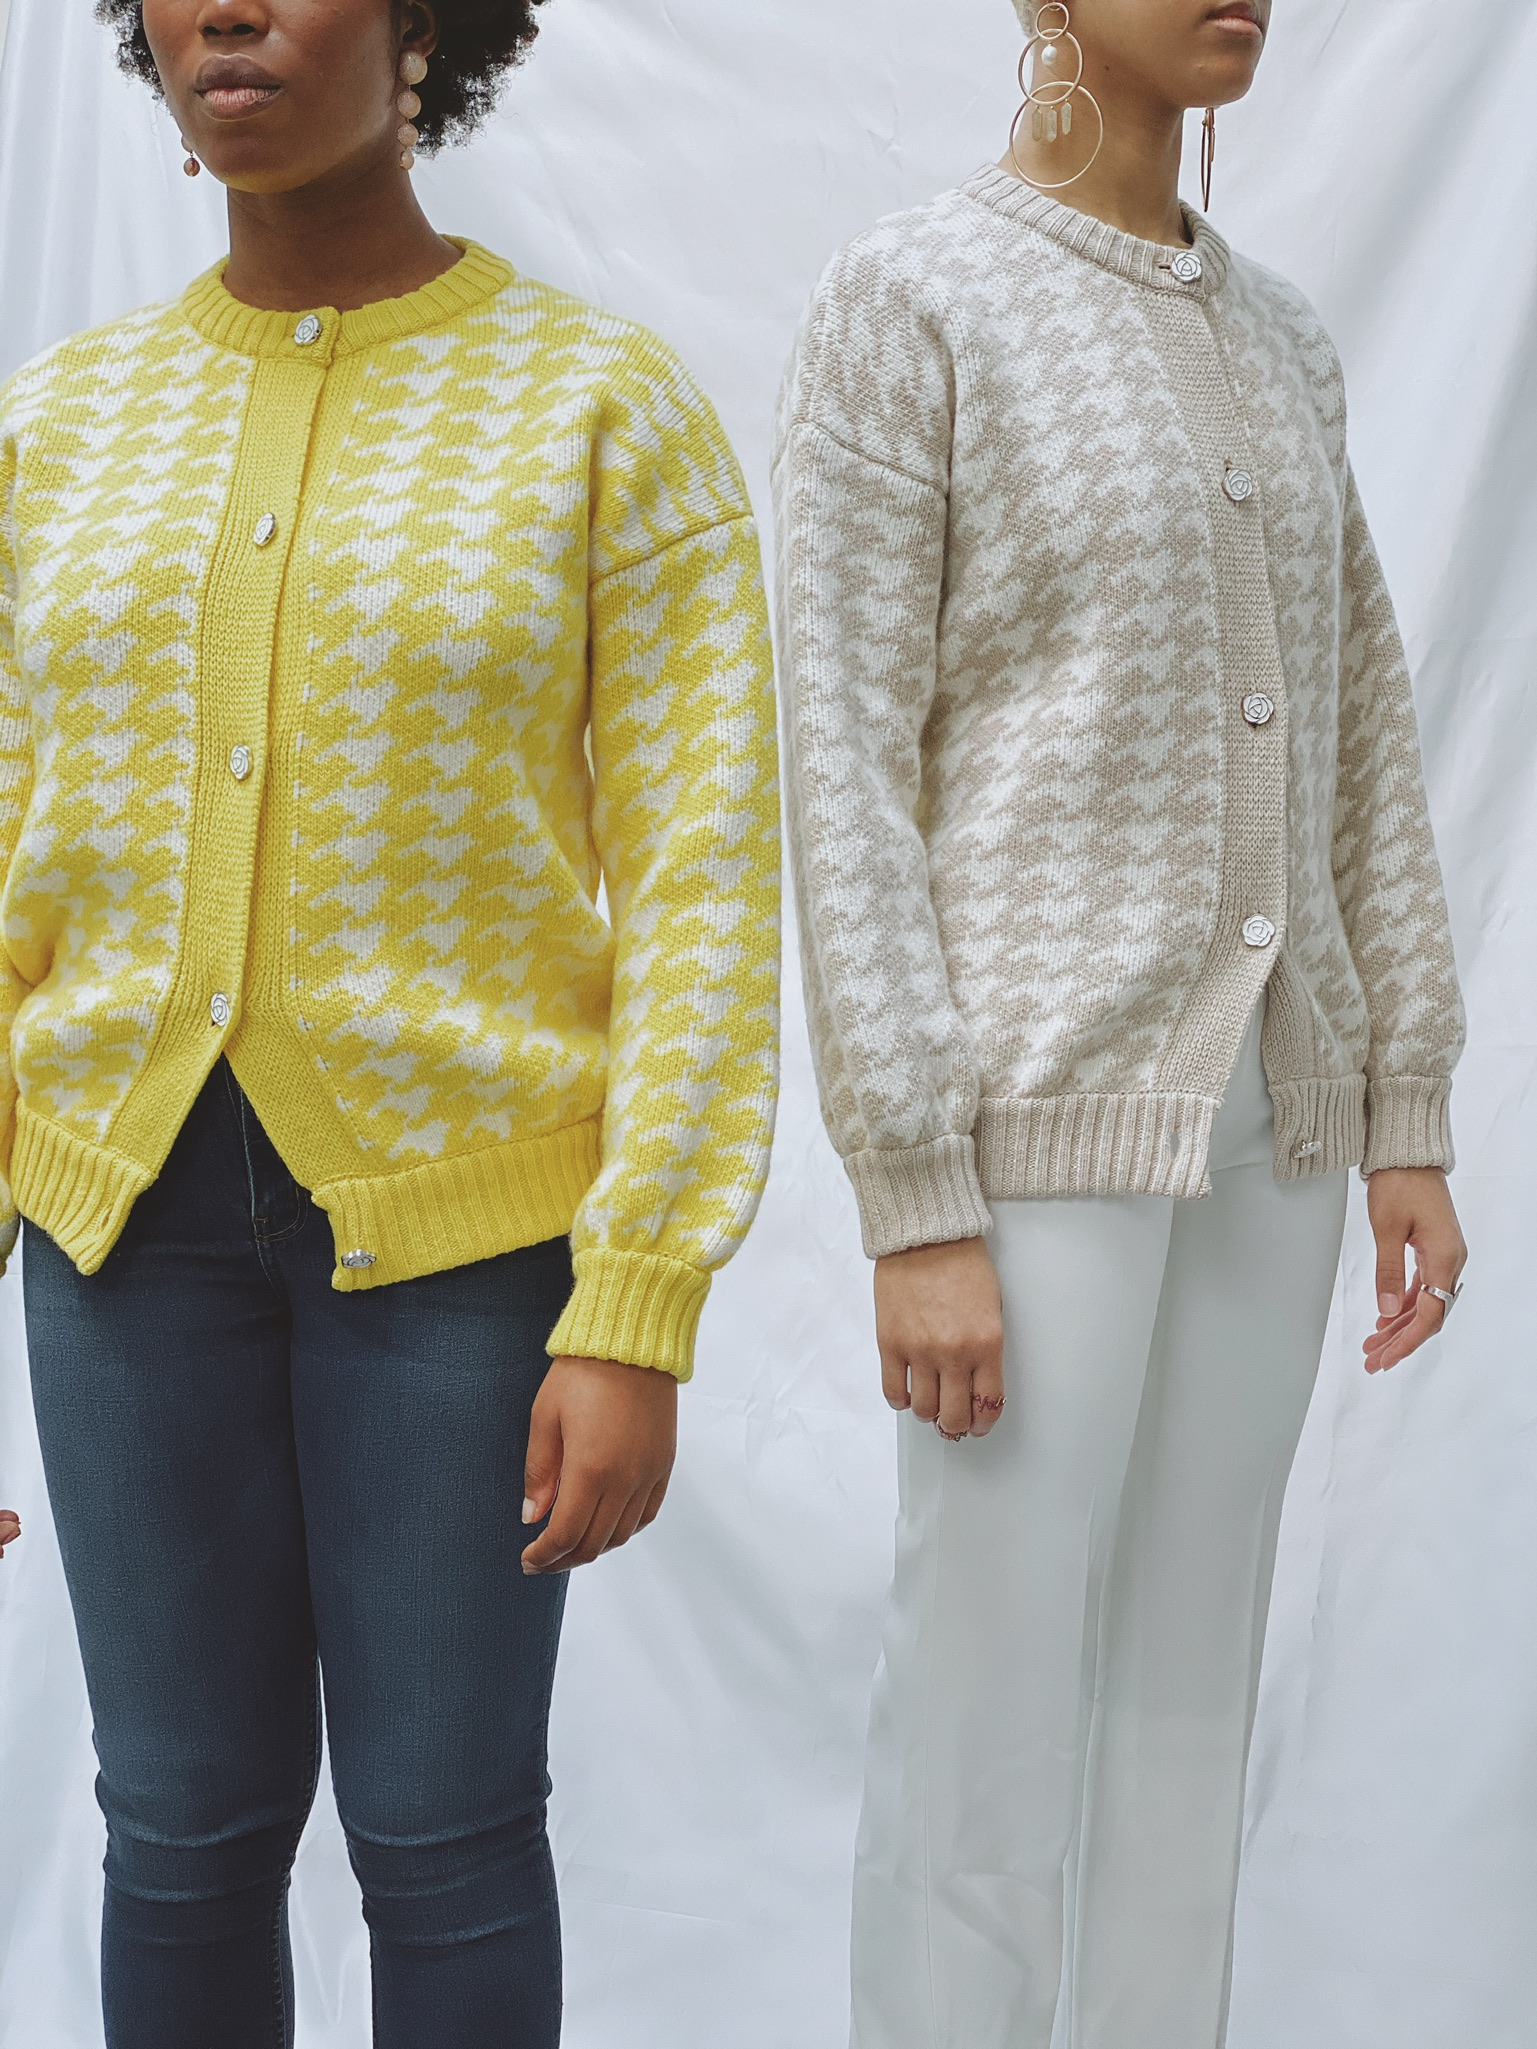 Houndstooth Jacket - Limoncello and Cream by Ami Amalia on curated-crowd.com